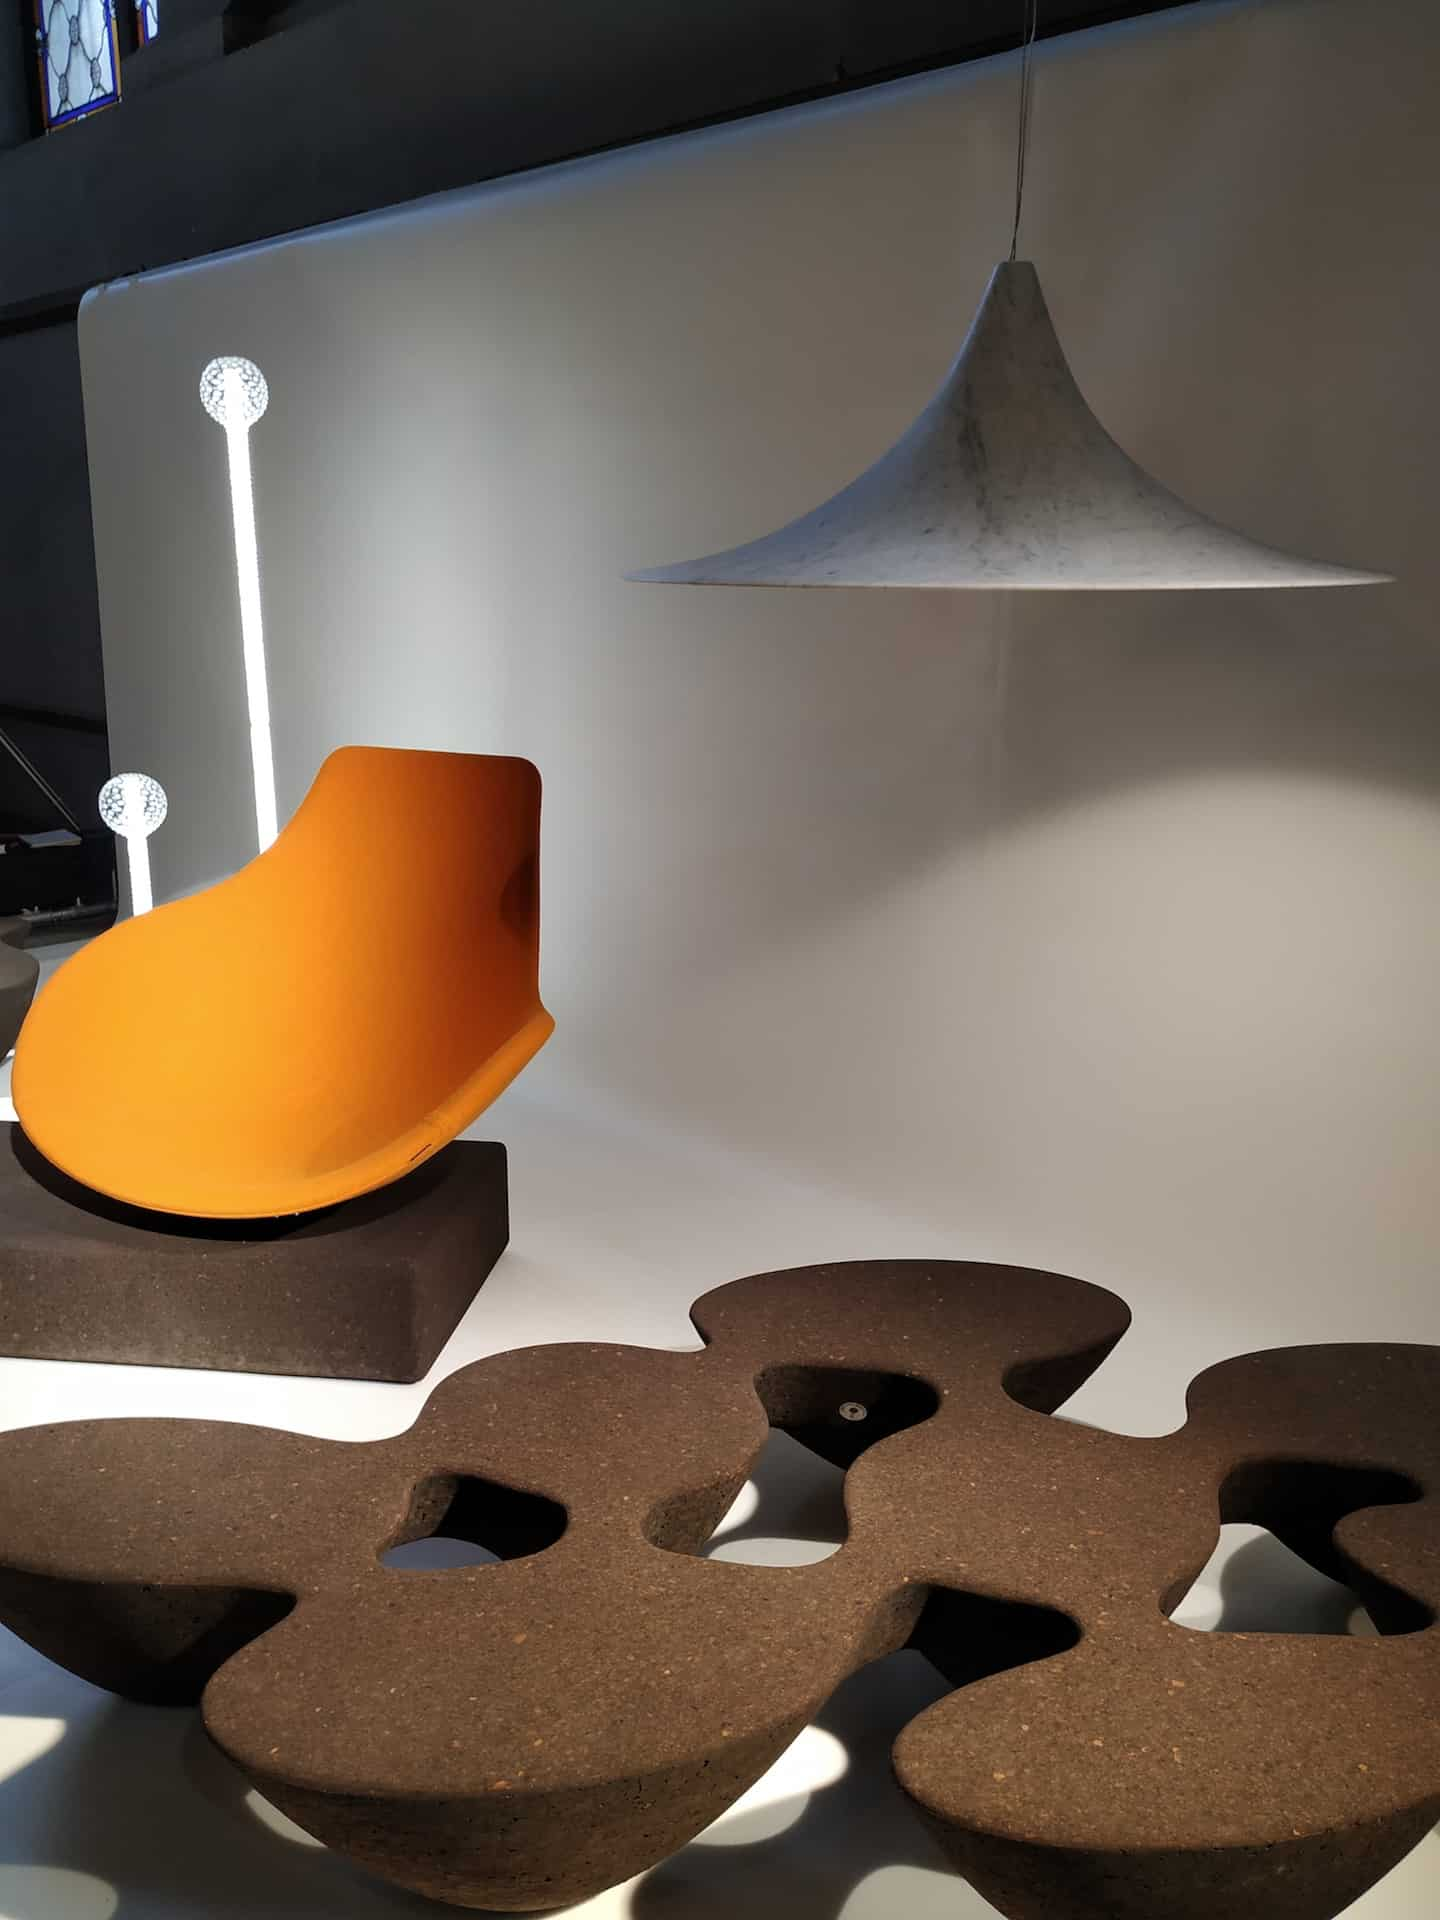 BABLED EDITION - Inspired by the stairs of Honour at Milan design week